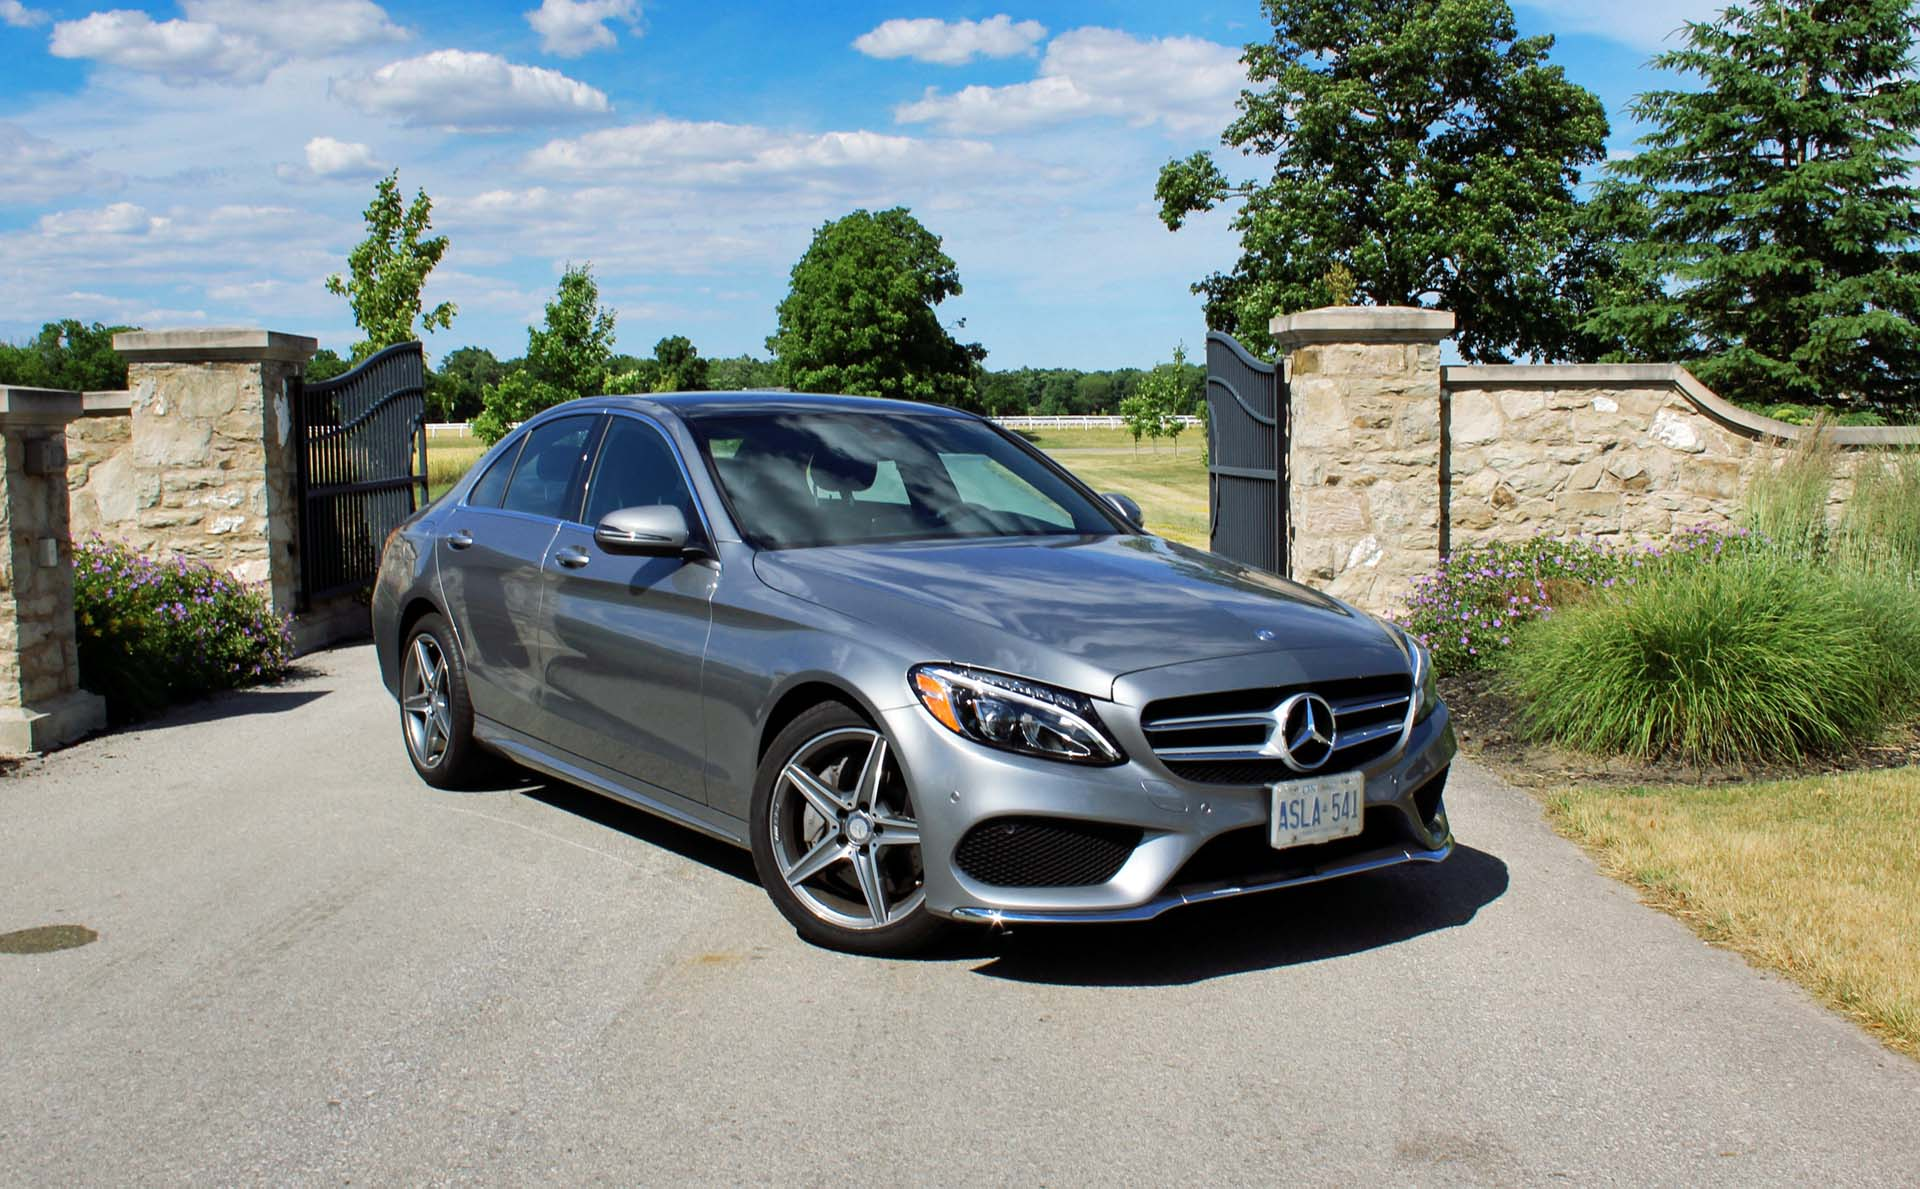 2016 Mercedes-Benz C300 4Matic Test Drive Review